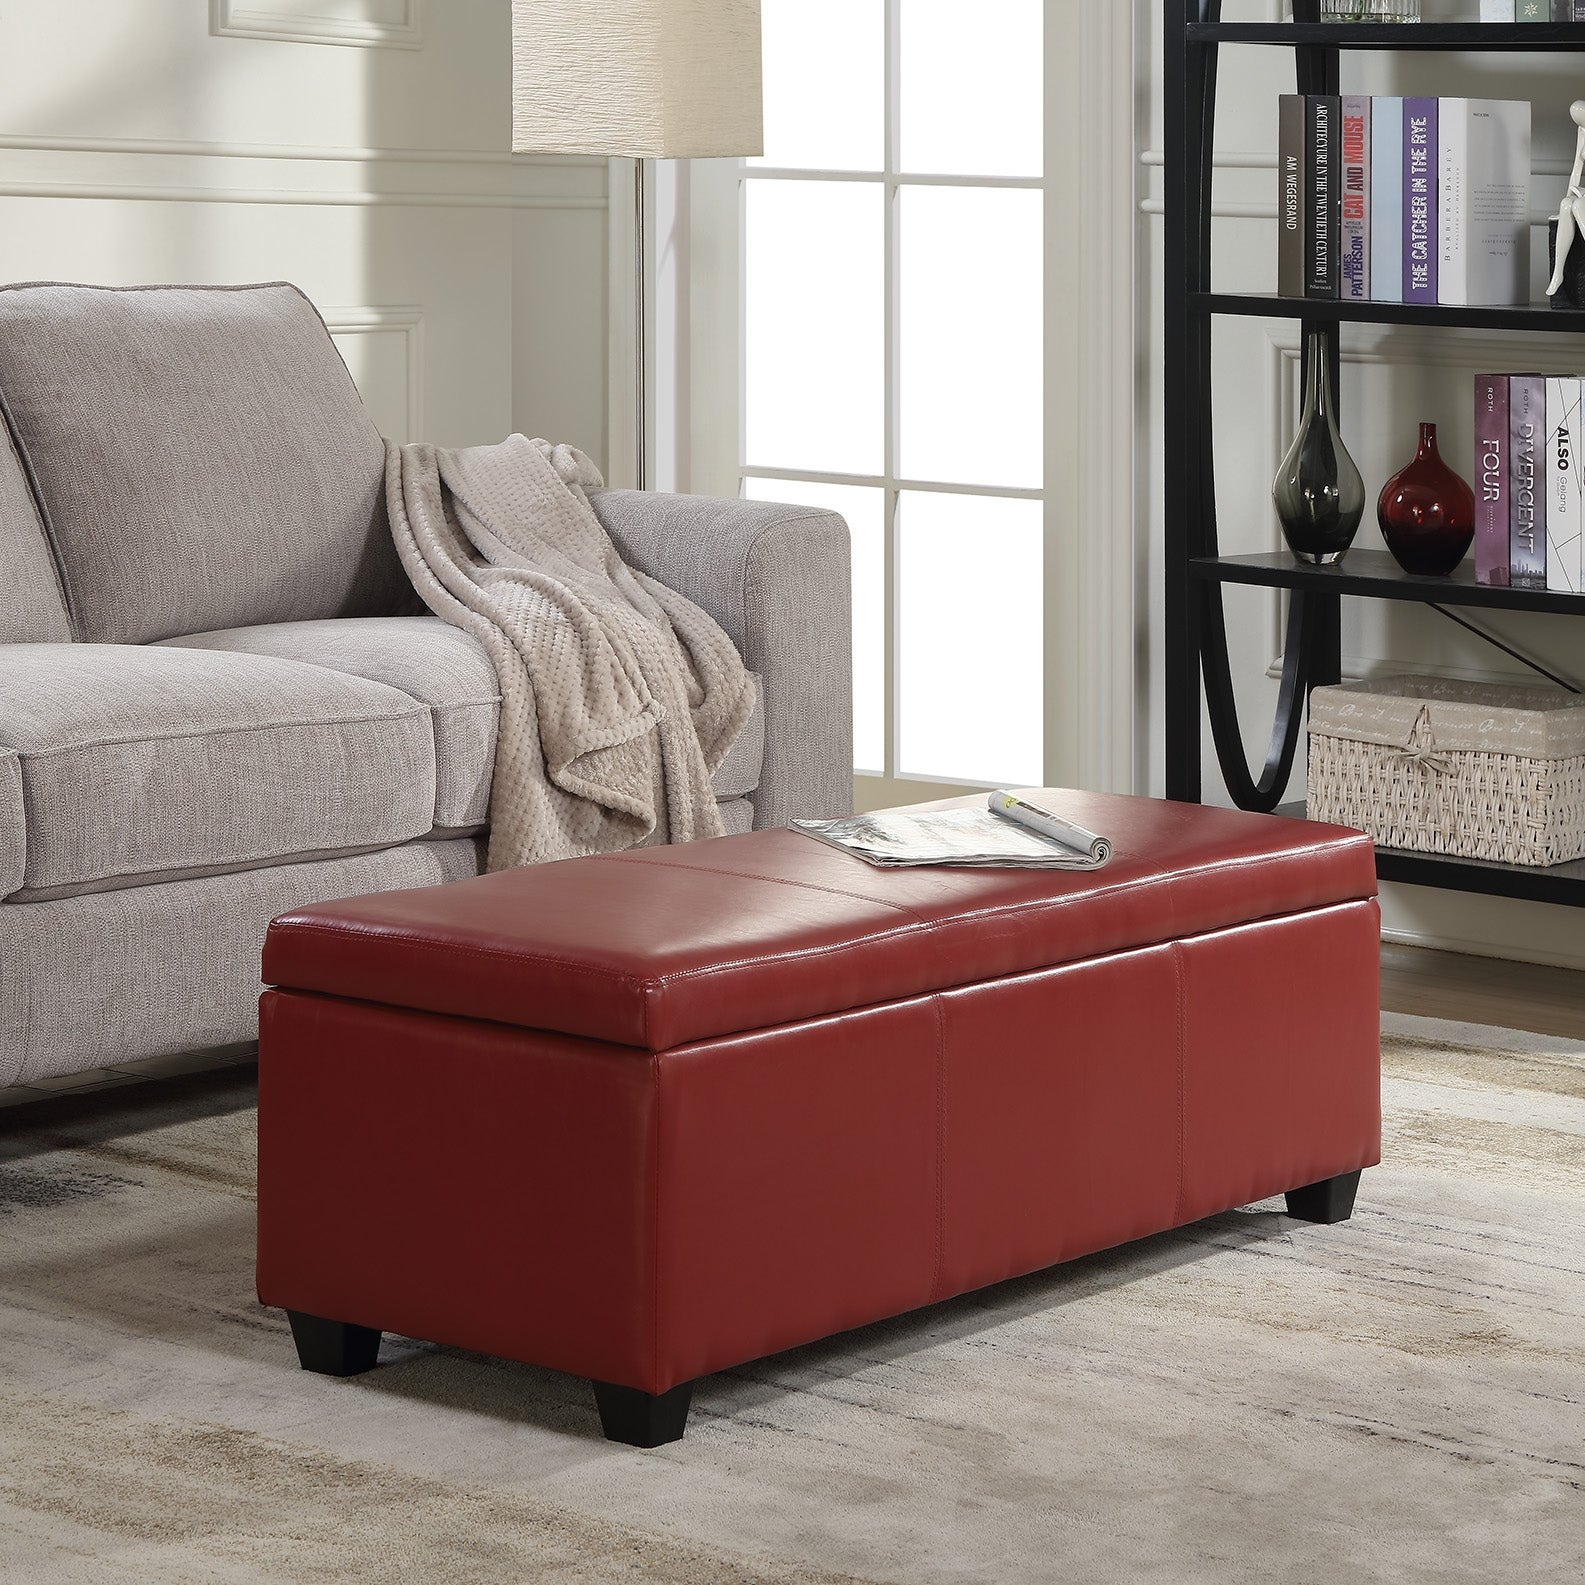 Belleze red ottoman bench top storage living room bed home leather rectangular 48inch